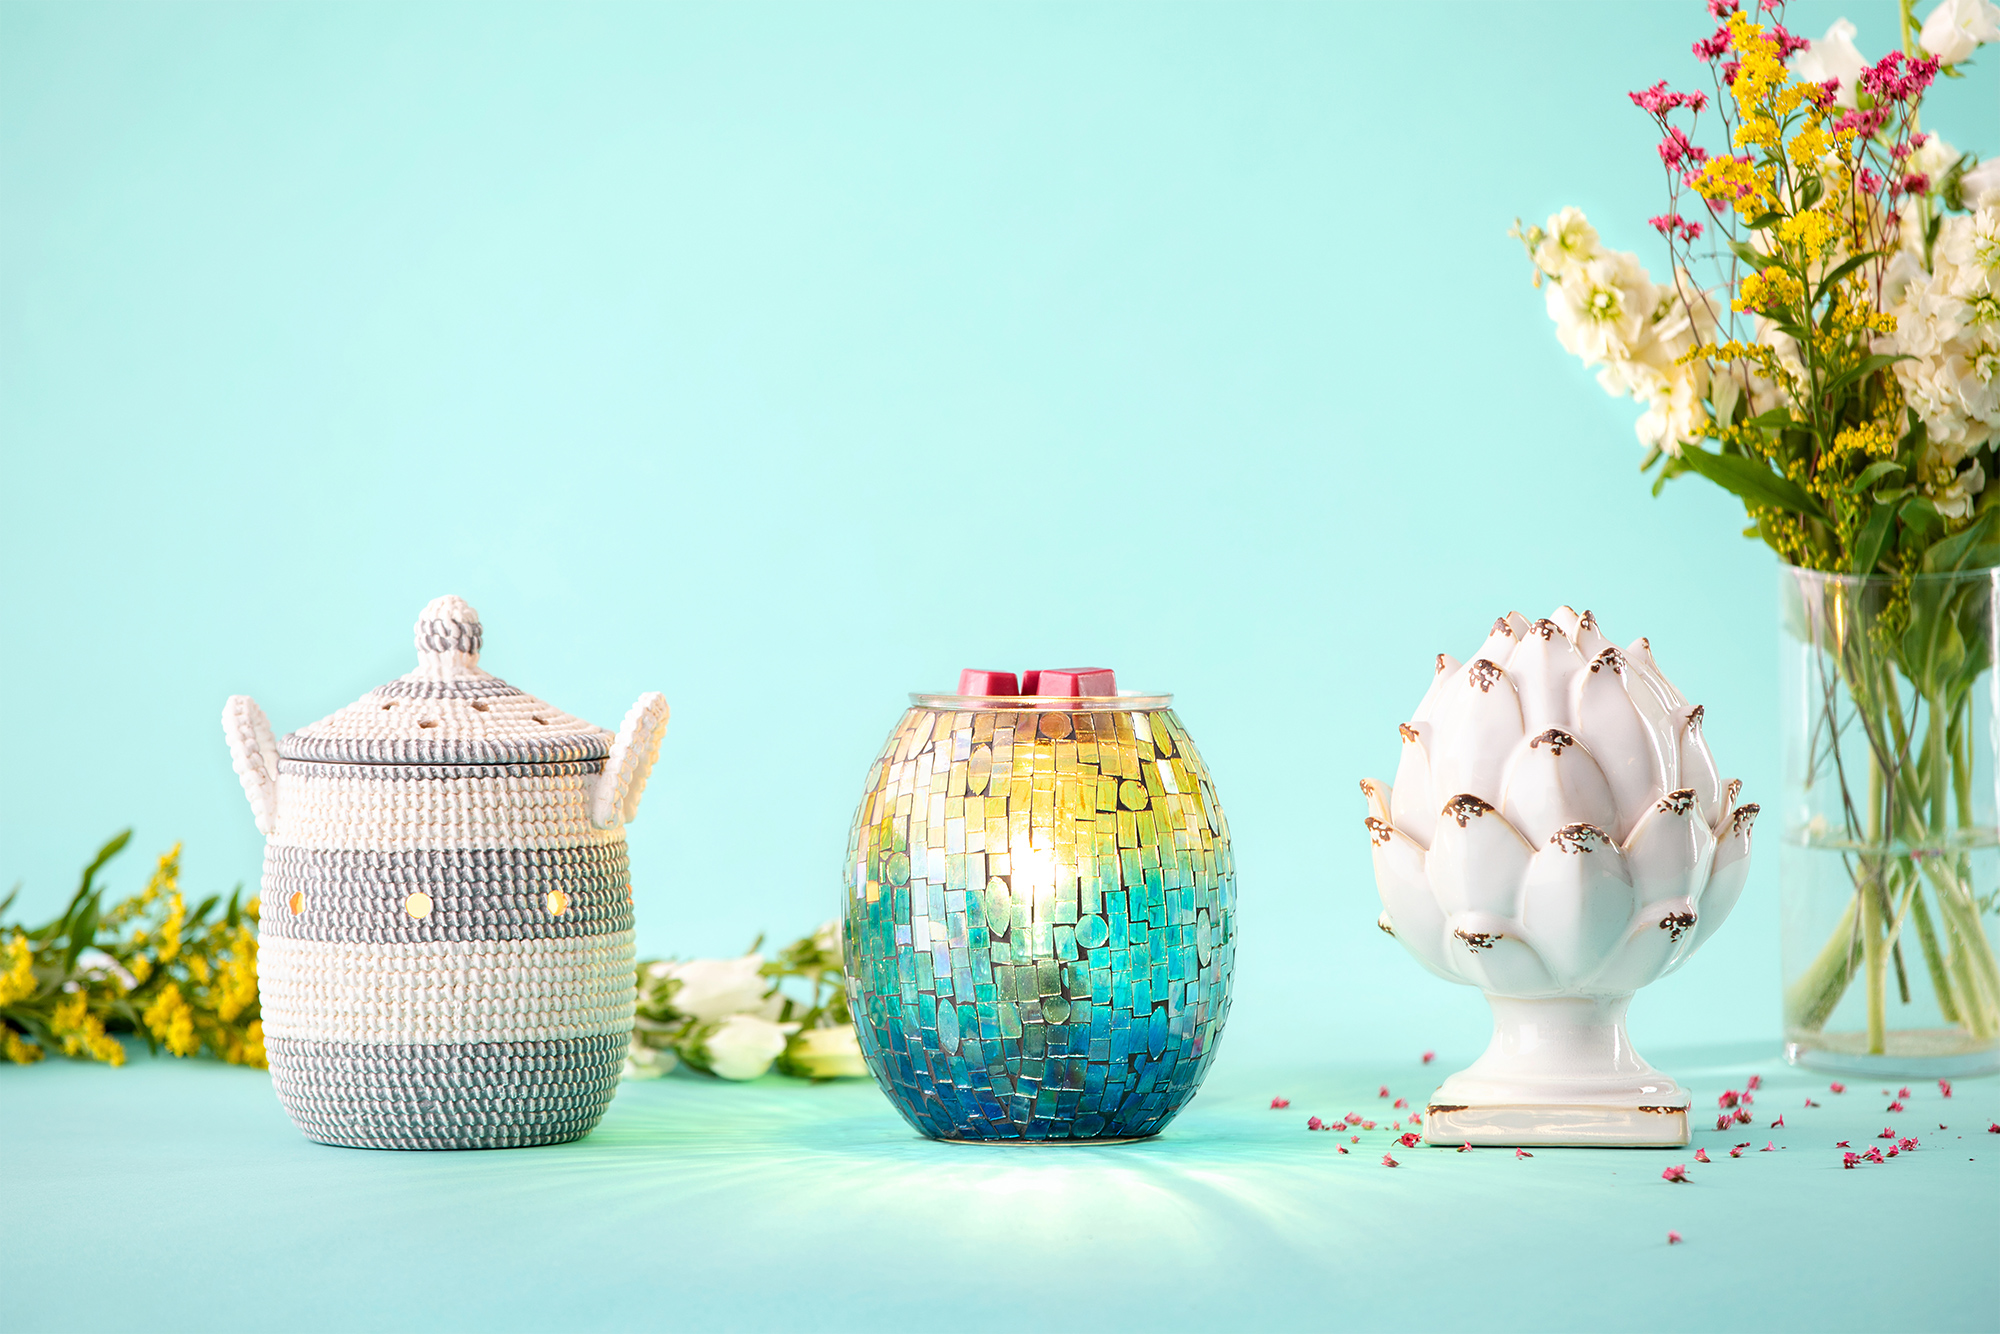 Scentsys Inspired Warmer Designs: Sweetgrass Basket, Peace and Prosperity, Mended Mosaic Mist